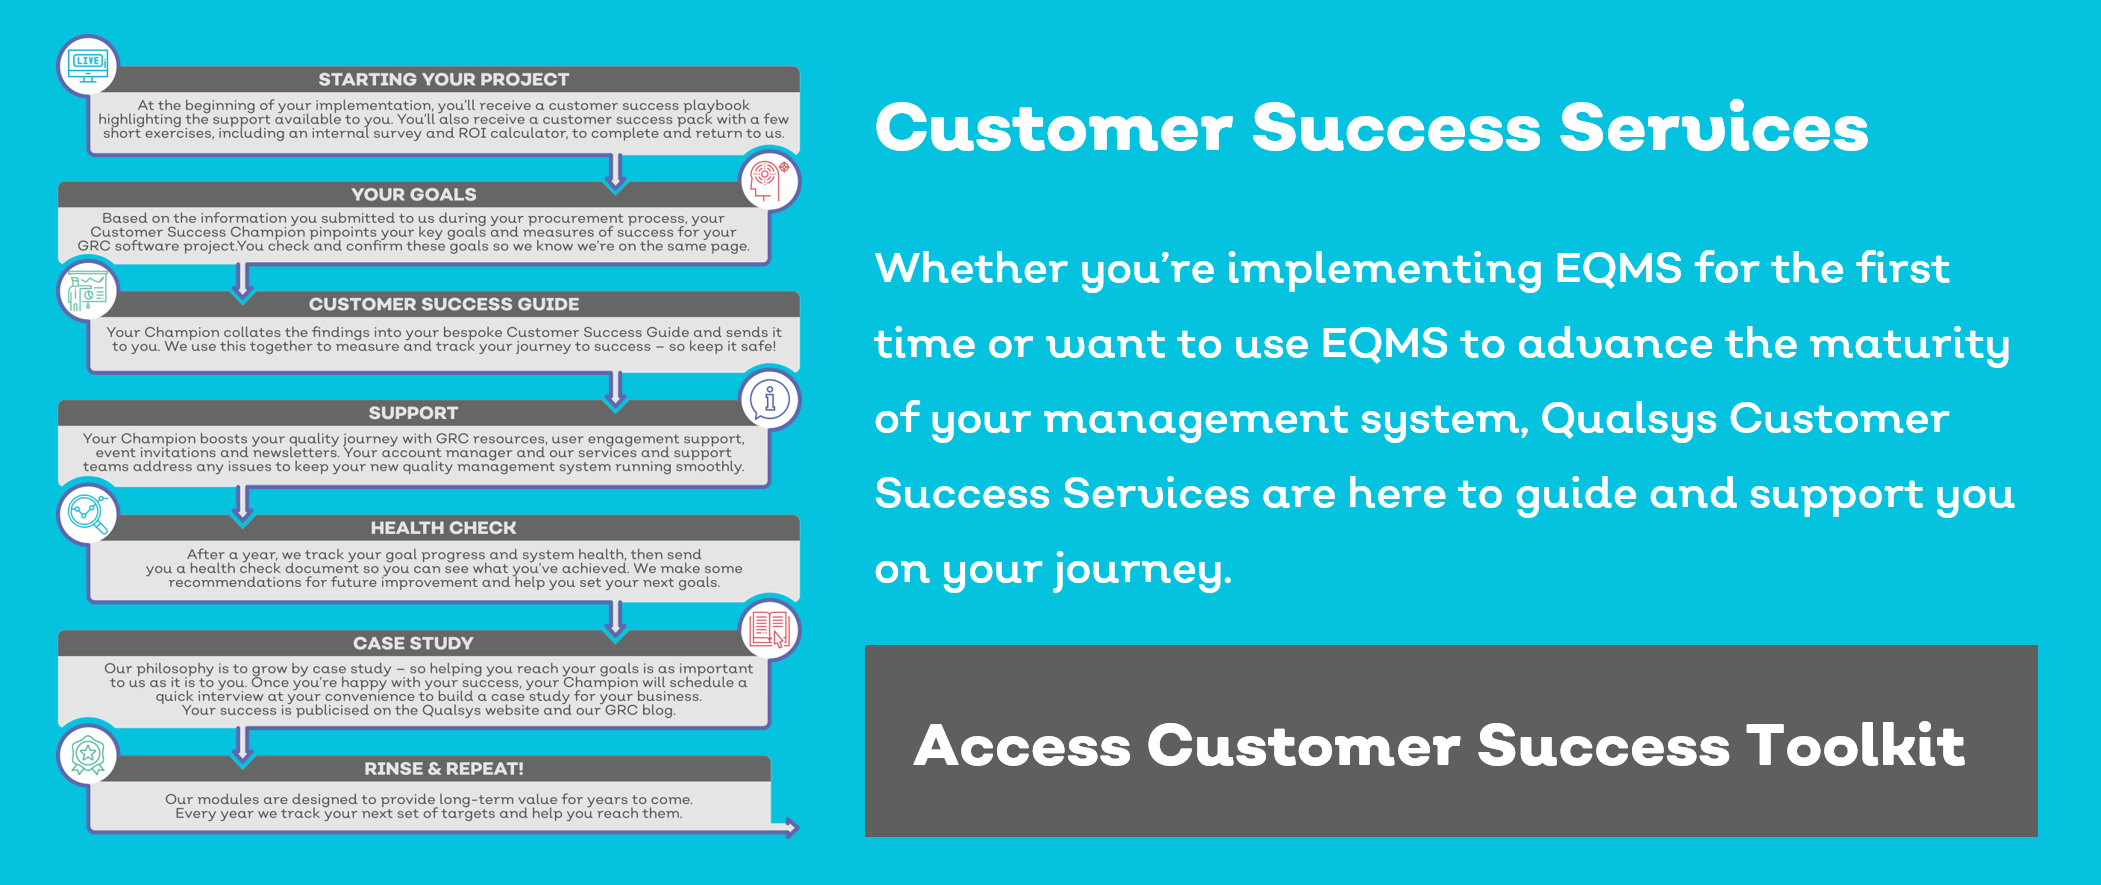 Customer success toolkit